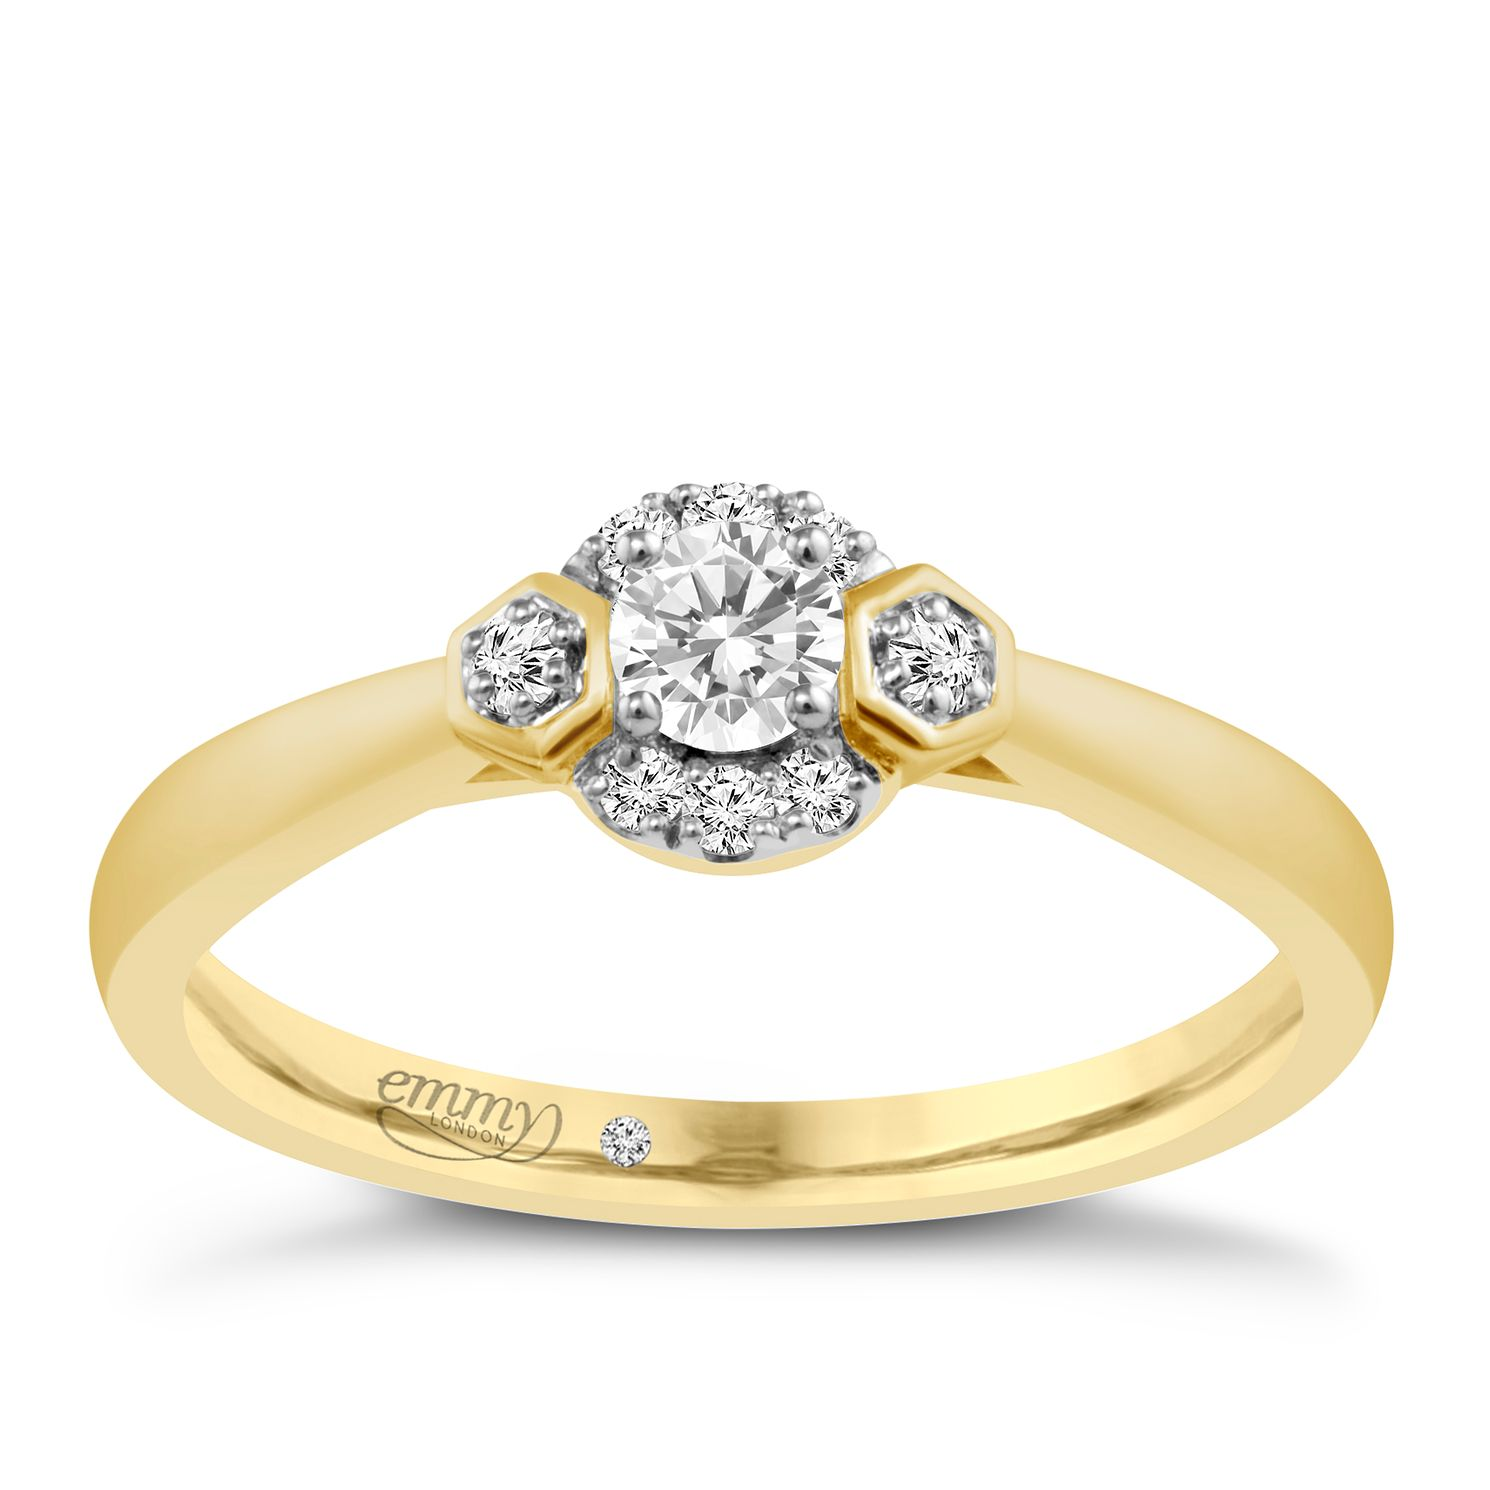 Emmy London 9ct Yellow Gold 1/5 Carat Diamond Solitaire Ring - Product number 4705866